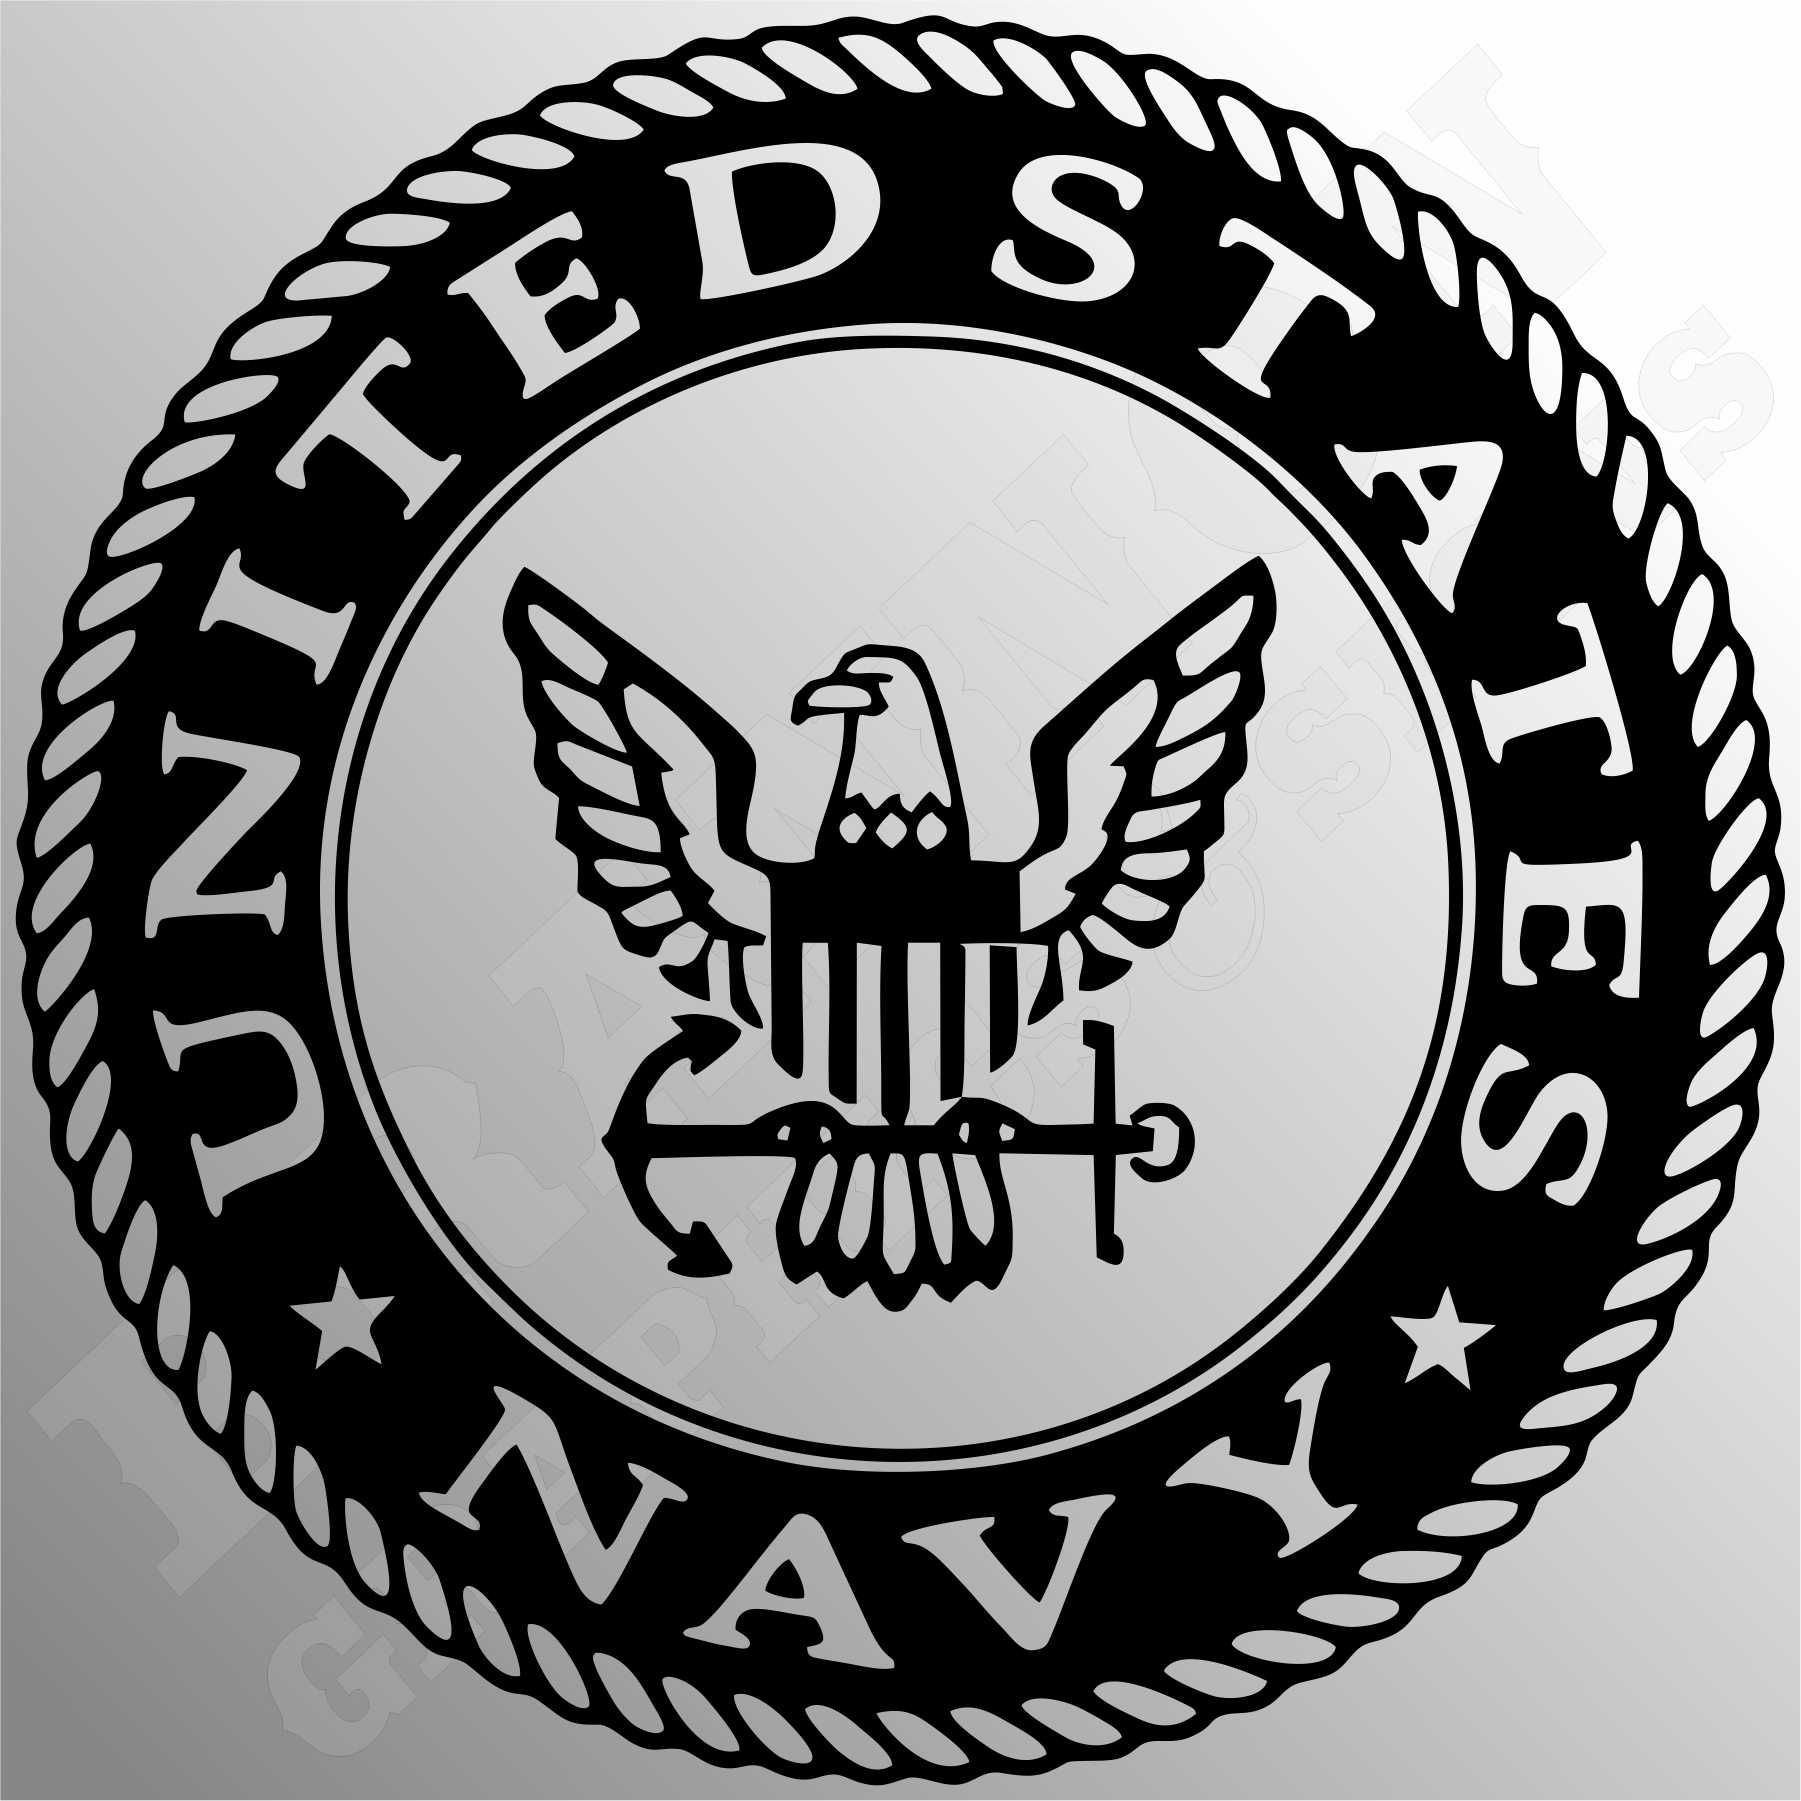 United state navy seal military themed design that can be made united state navy seal military themed design that can be made into decals biocorpaavc Gallery